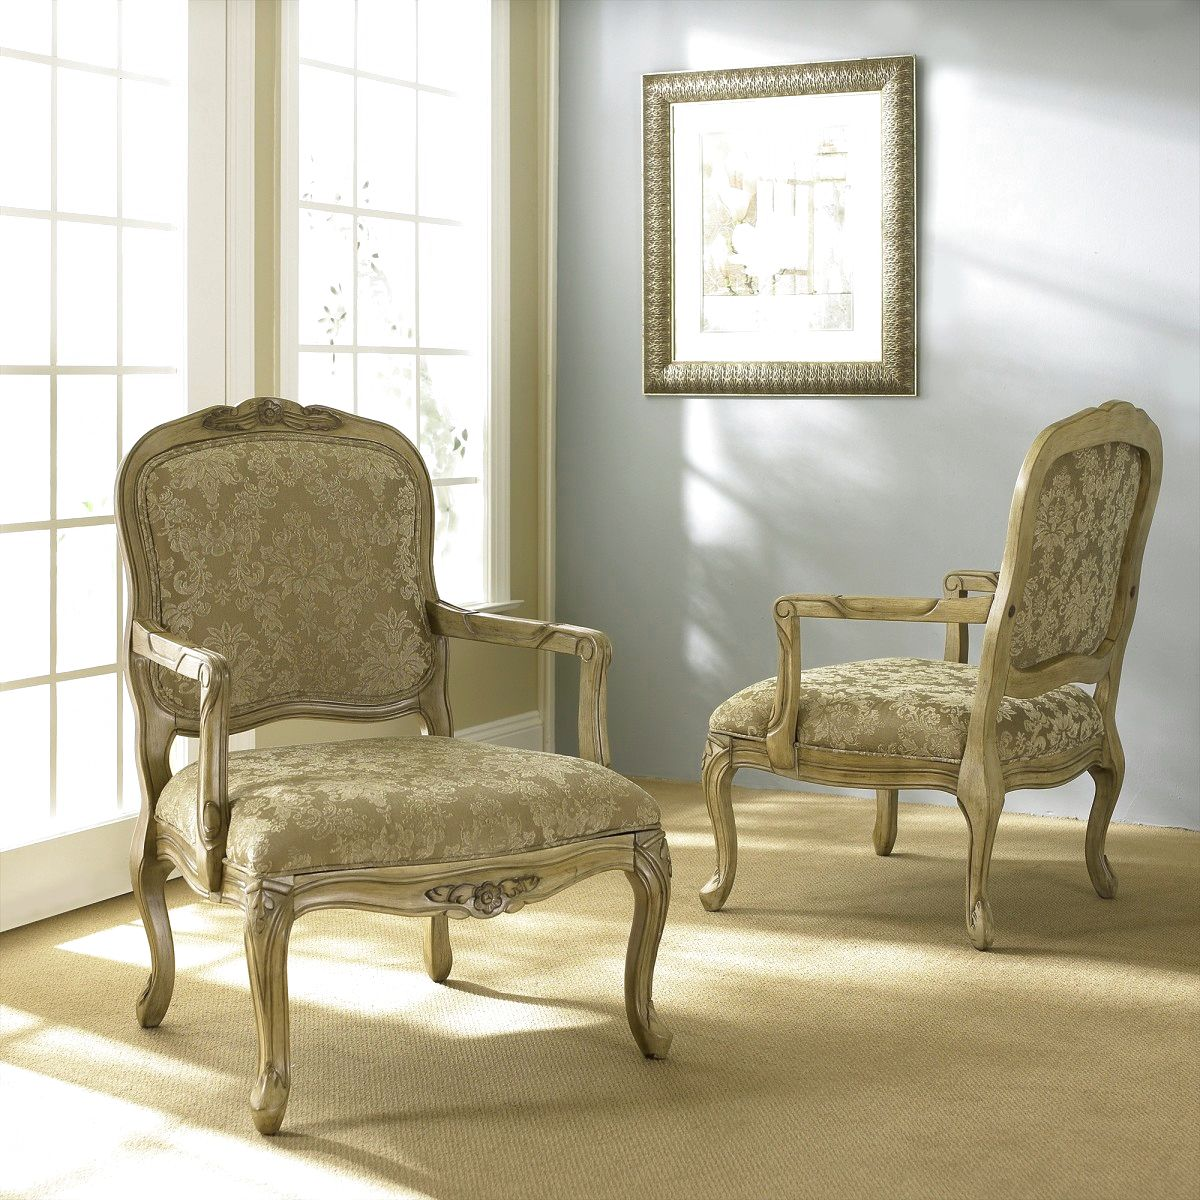 Living Room Chair Styles Accent Chairs For Living Room 23 Reasons To Buy Hawk Haven